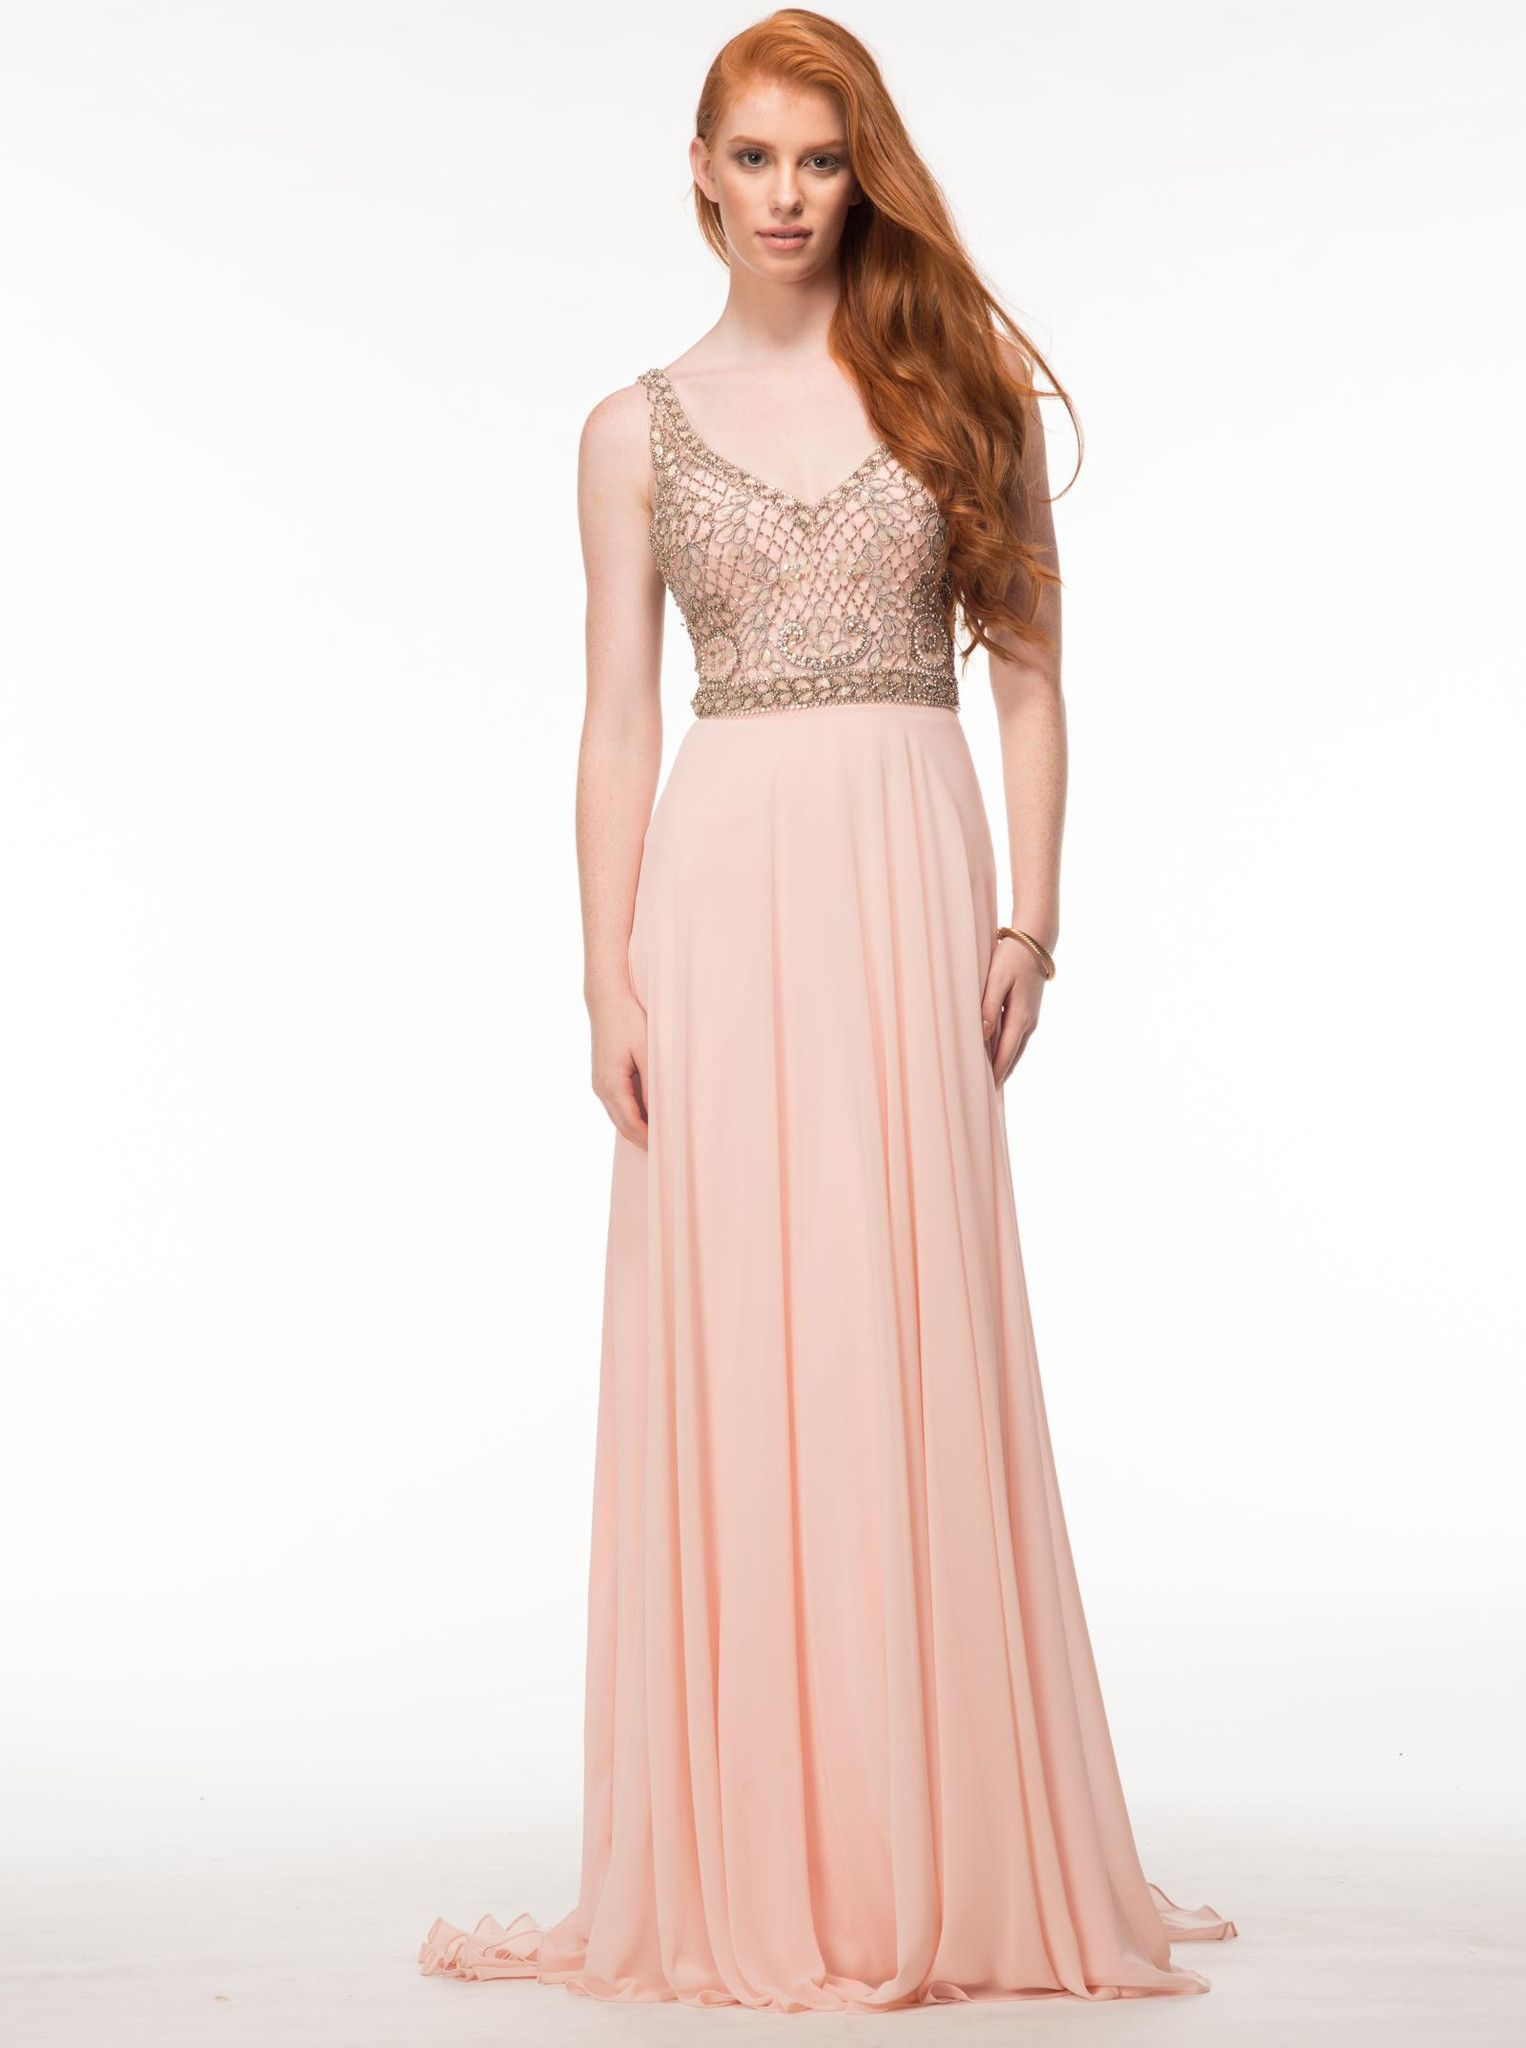 GLOW G605 Blush Chiffon Fit and Flow Prom Dress Evening Gown ...